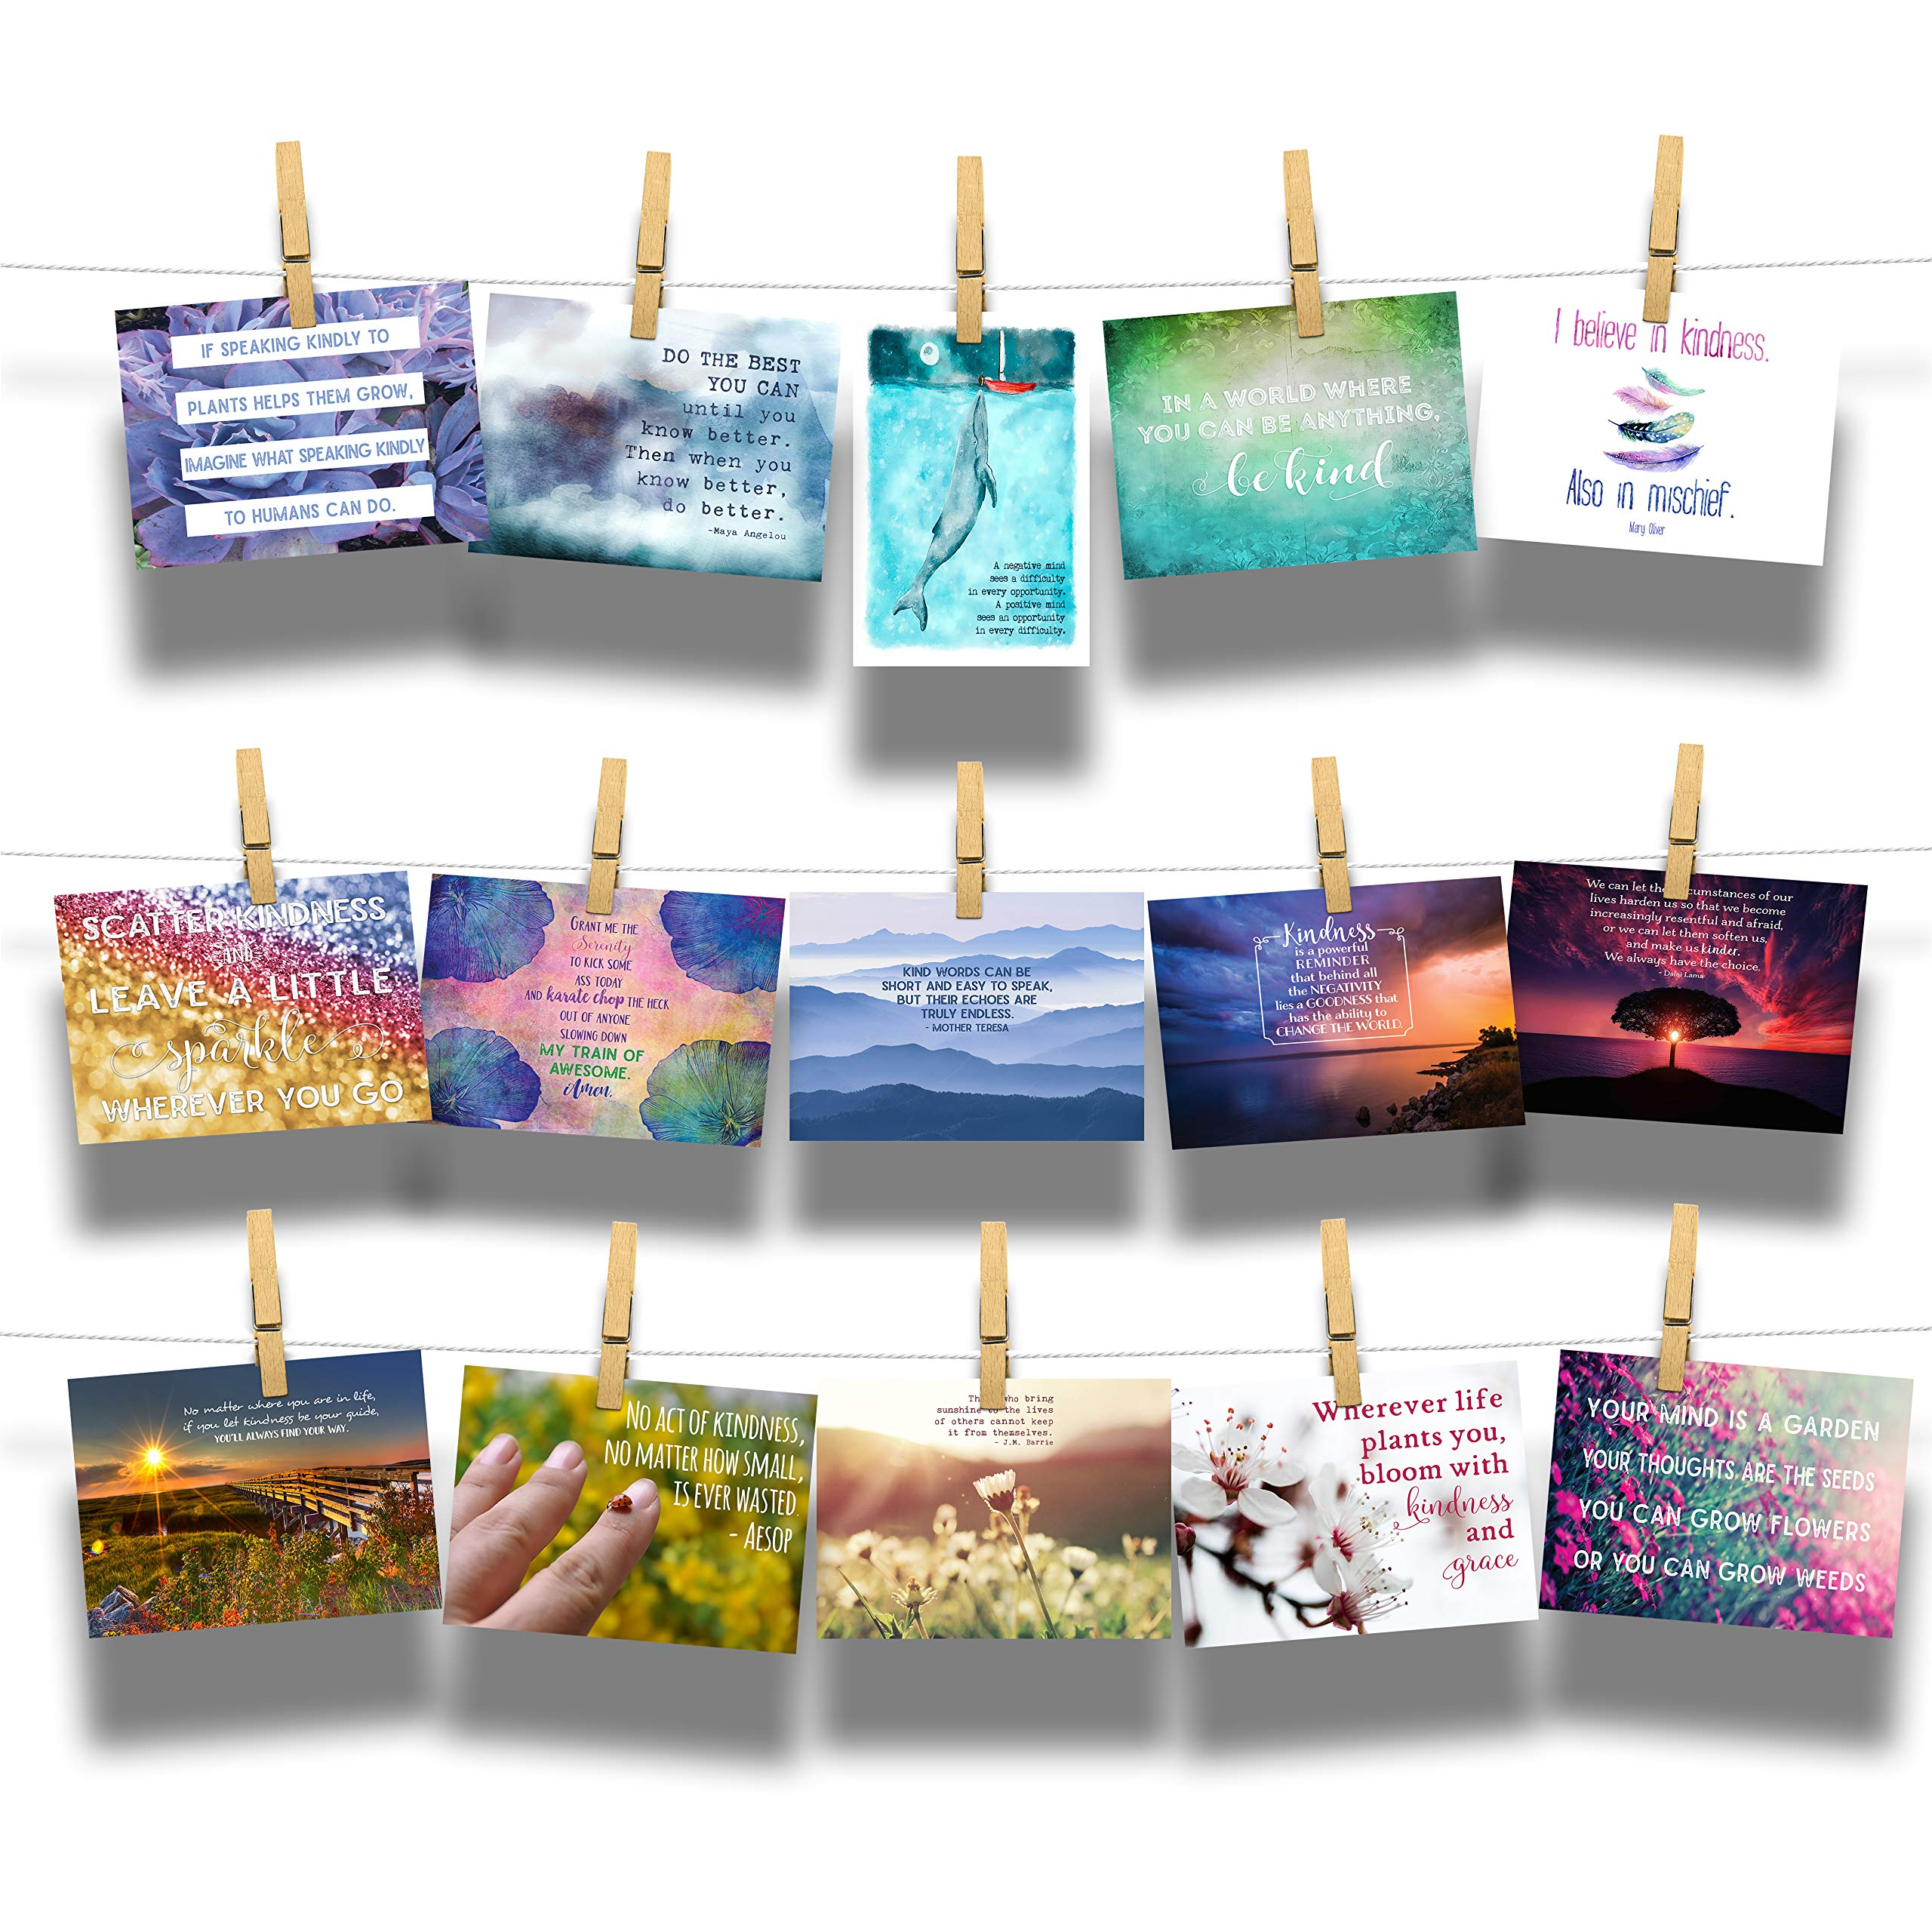 Kind Cards Postcard 15-Pack Assortment - Collection of Encouraging Kindness Inspirational Postcards